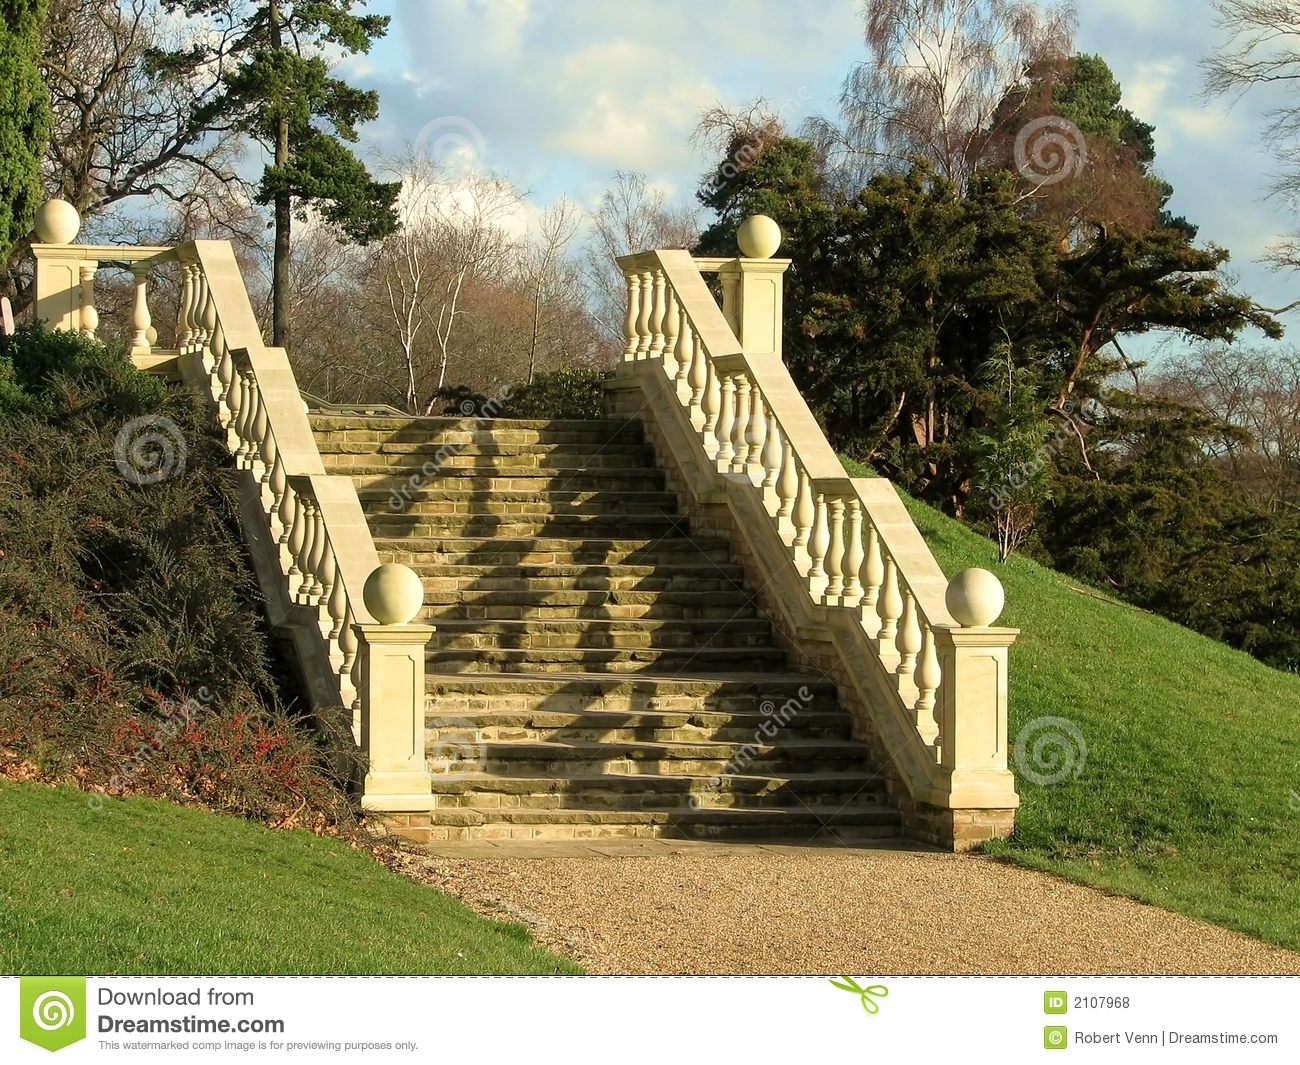 Elegant stone stairway royalty free stock photos image for Elegant stone